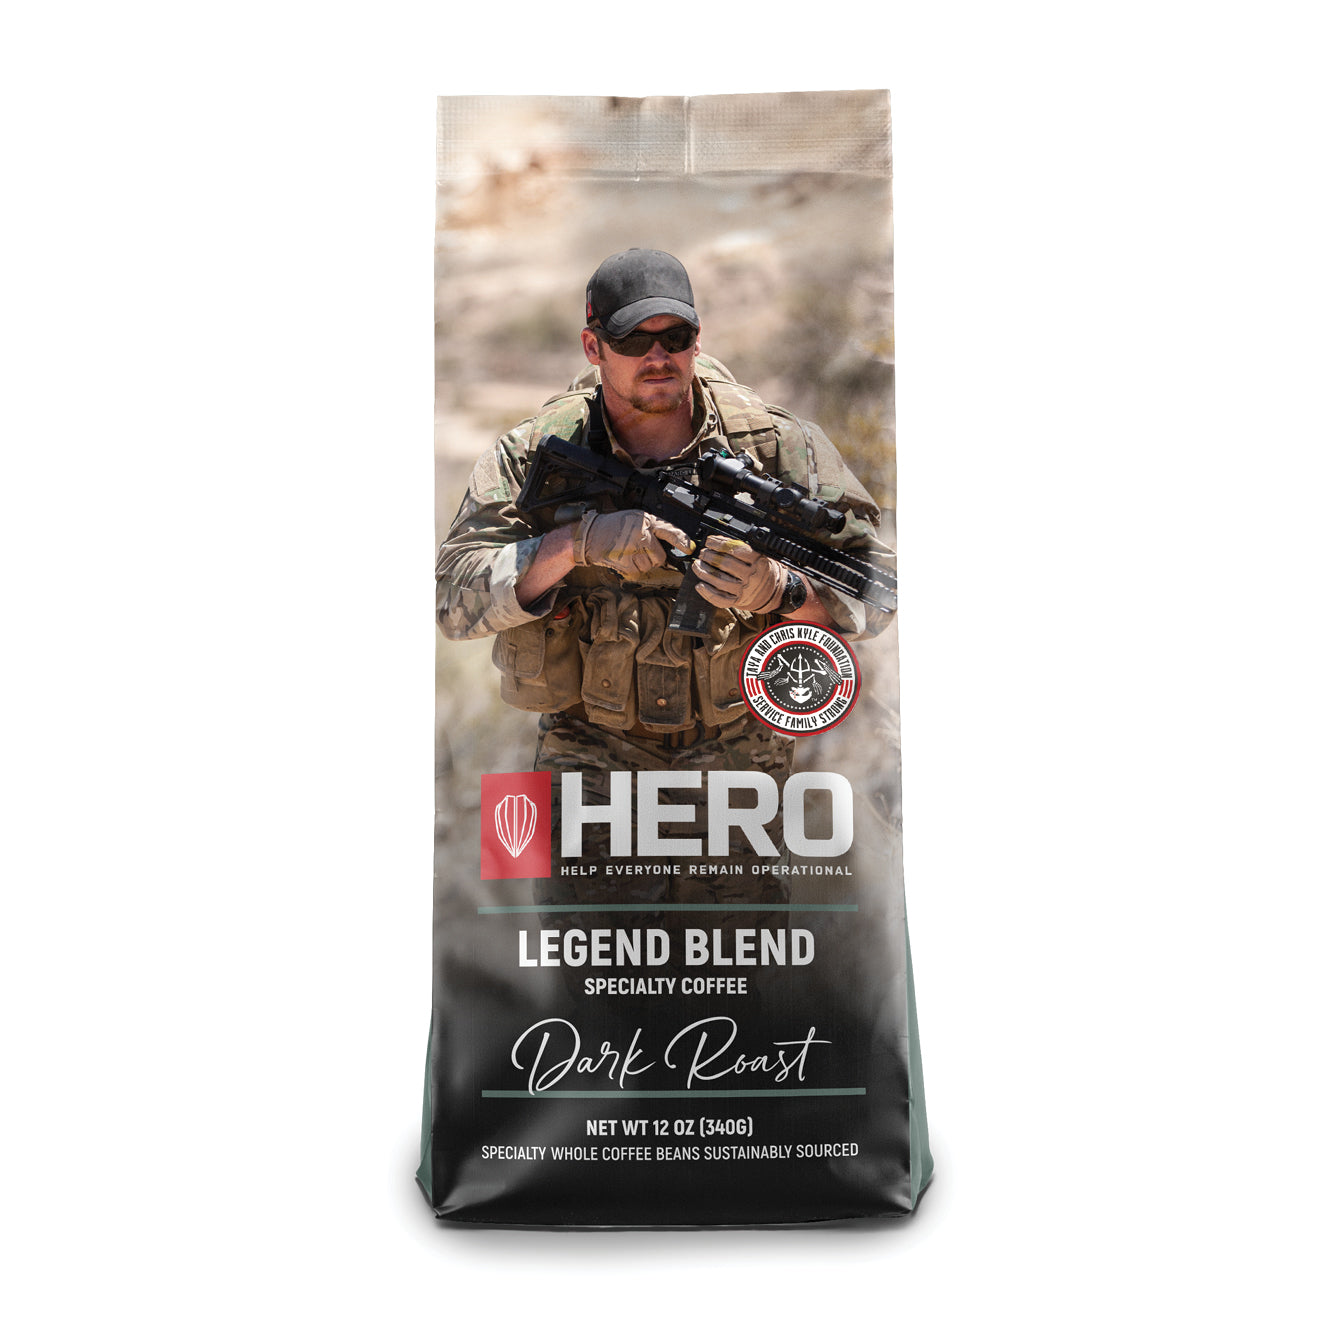 HERO Legend Blend Dark Roast Coffee